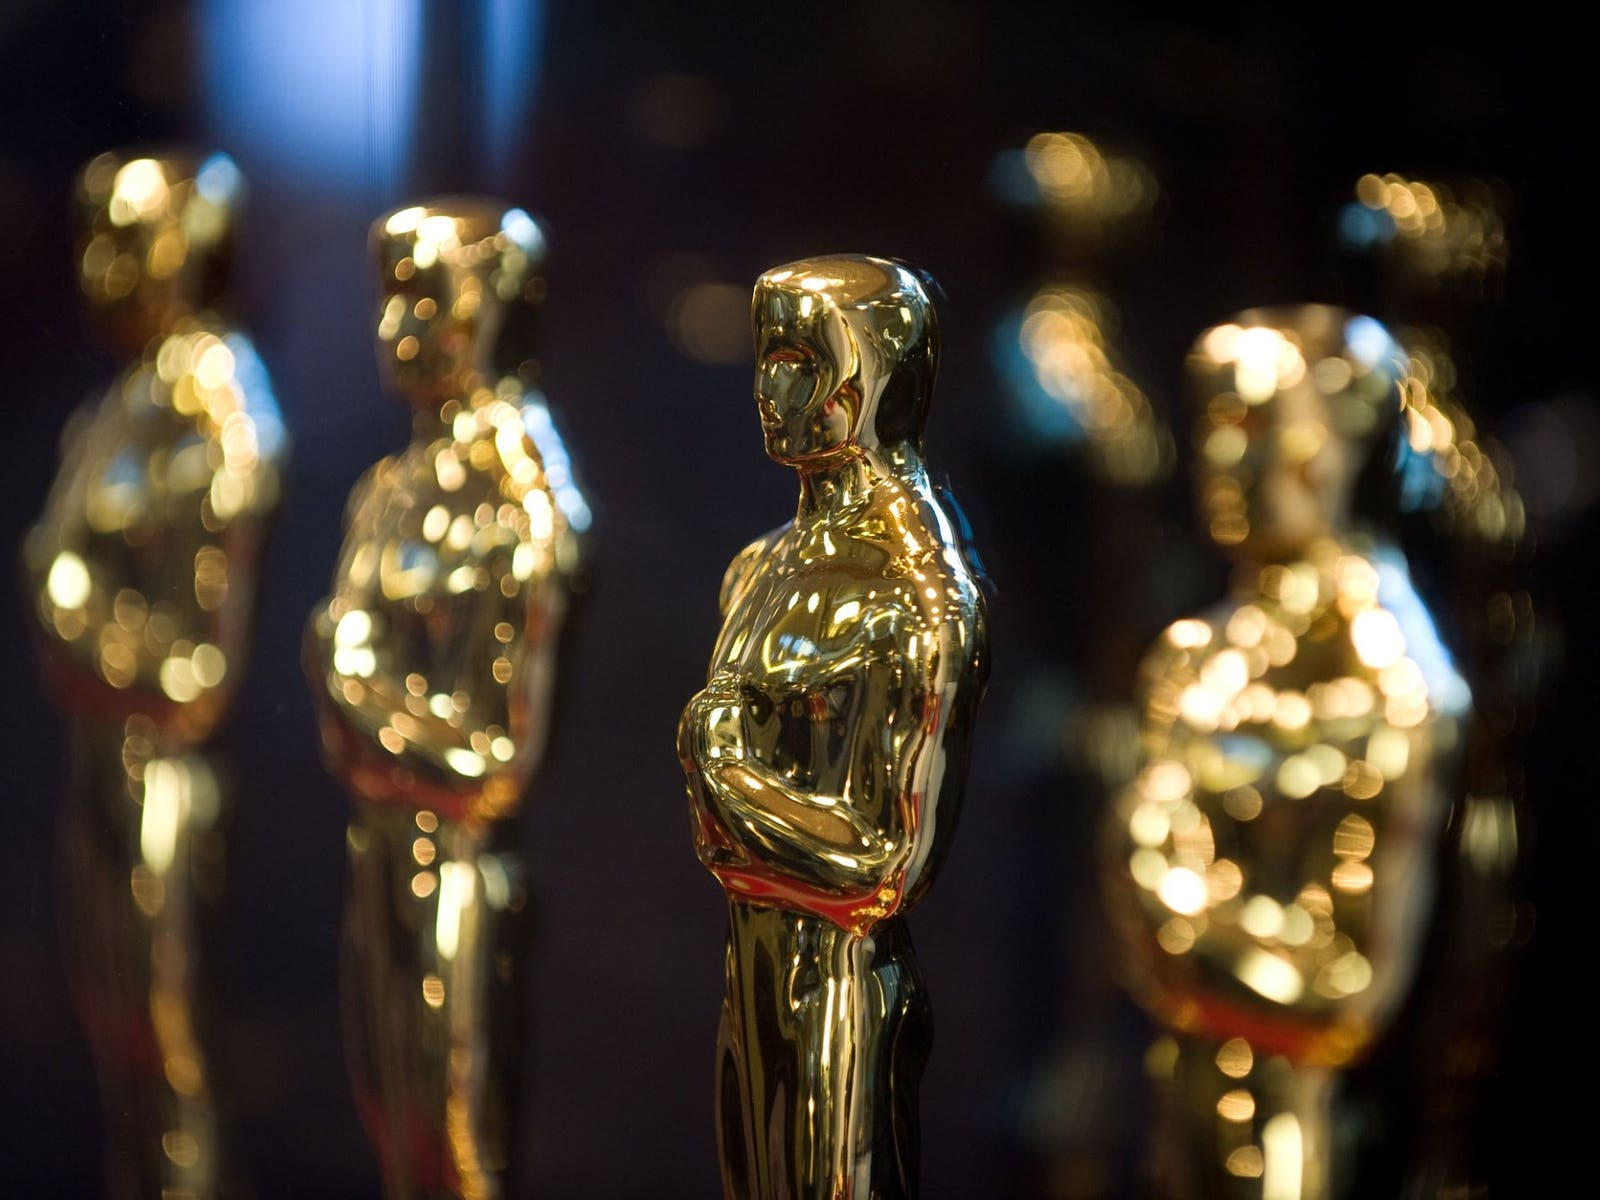 Oscar statues backstage at the Academy Awards